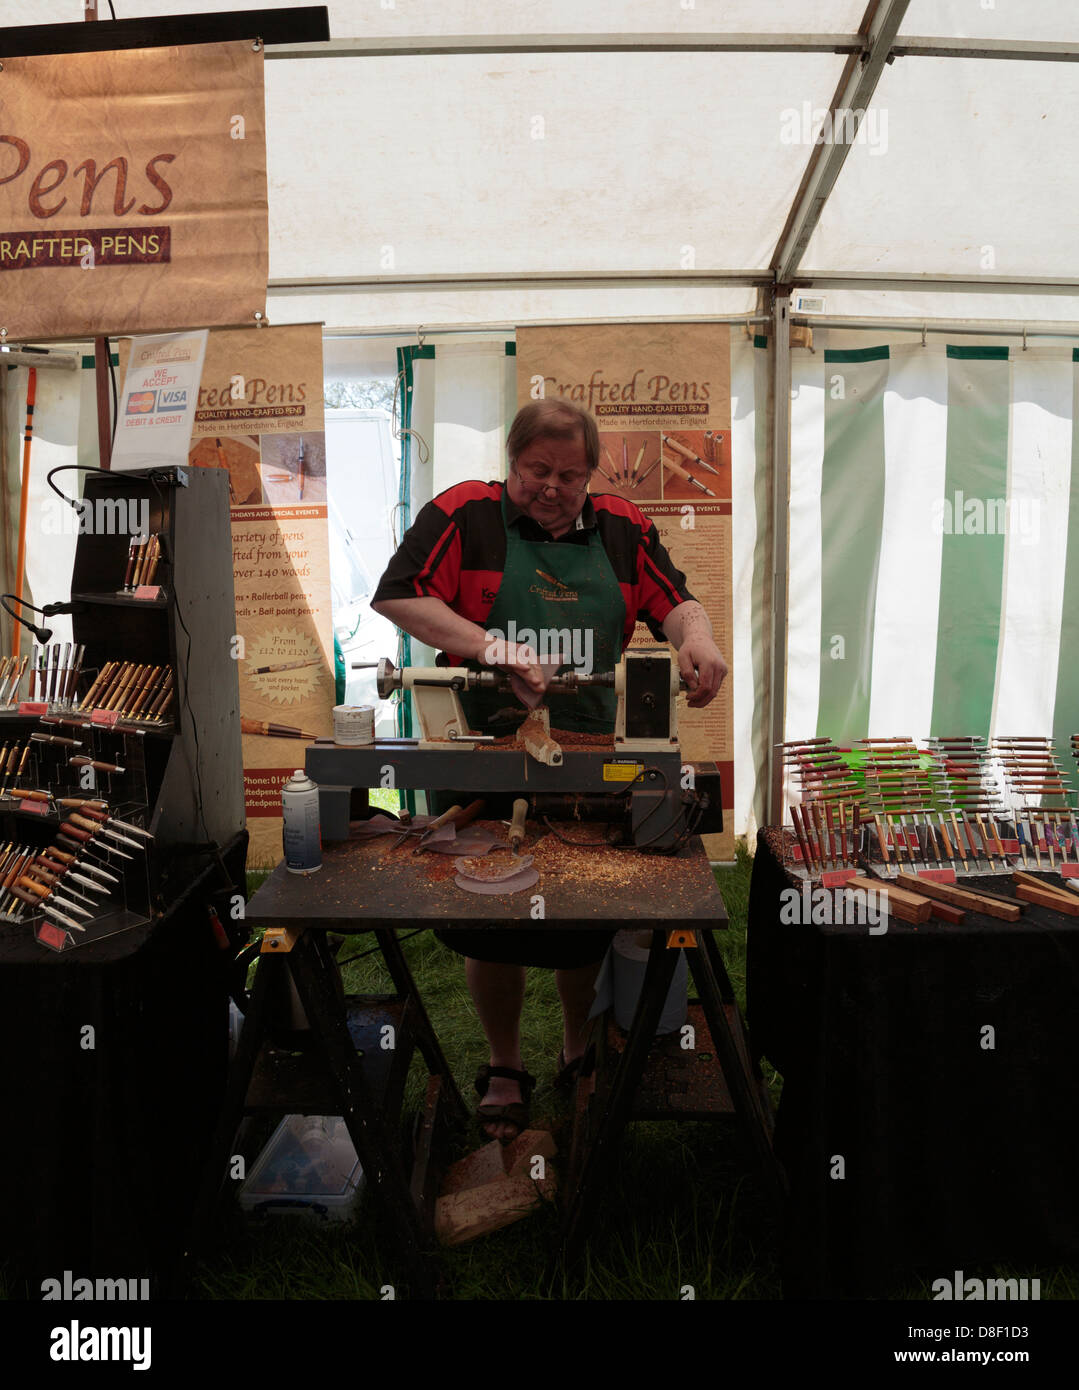 A man hand crafting pens at Game and Country Fair 26th May 2013, Burghley House, Stamford, Lincolnshire, England - Stock Image